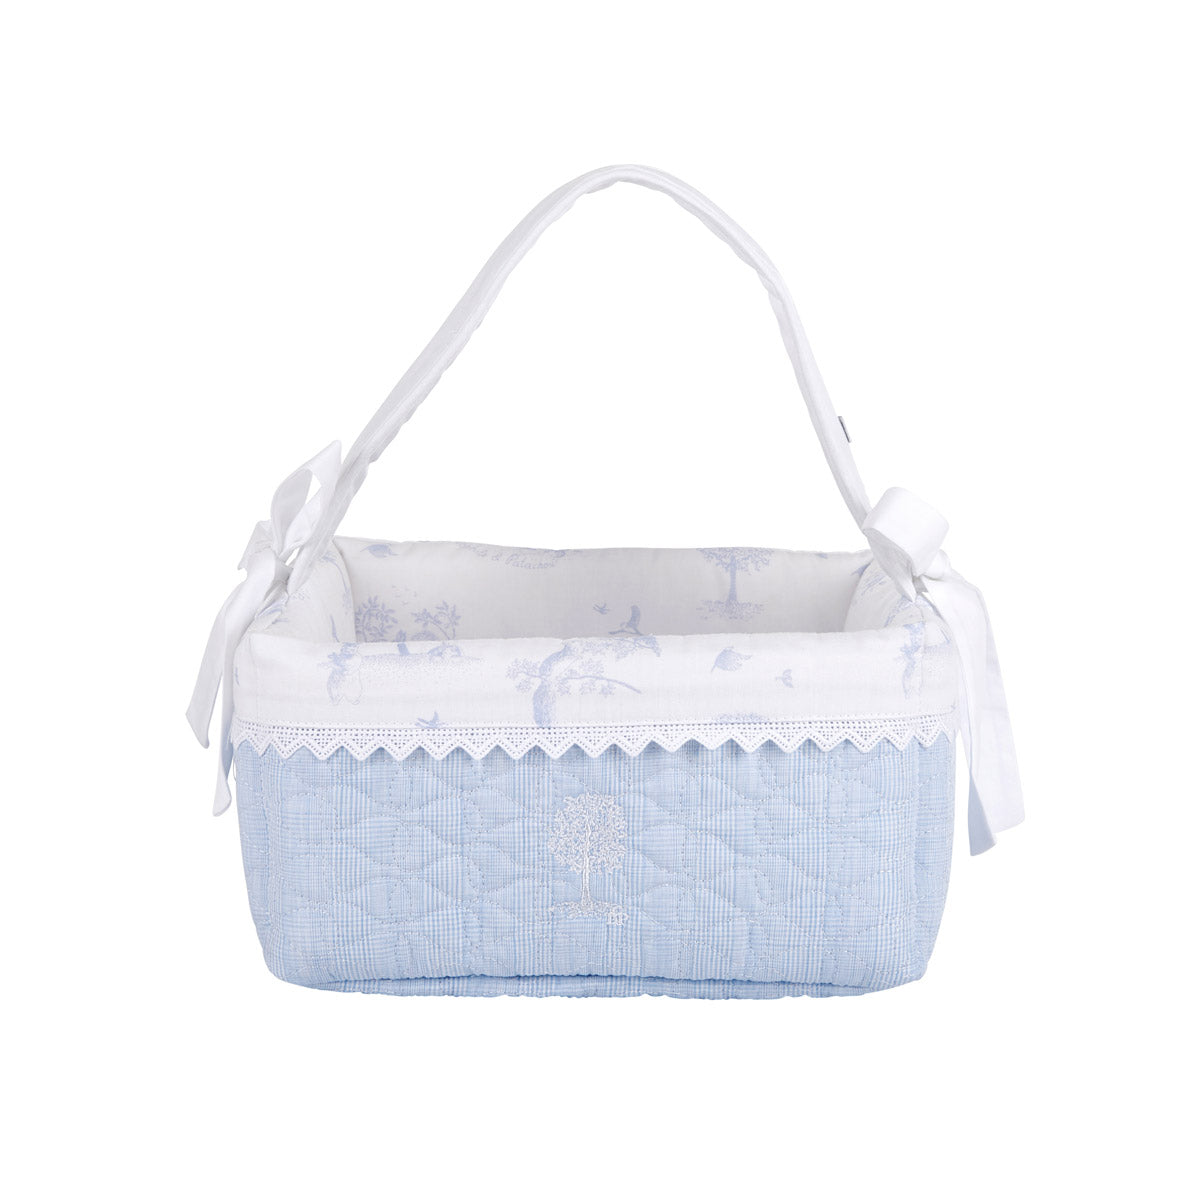 Theophile & Patachou Baby Bath Vanity Case - Sweet Blue